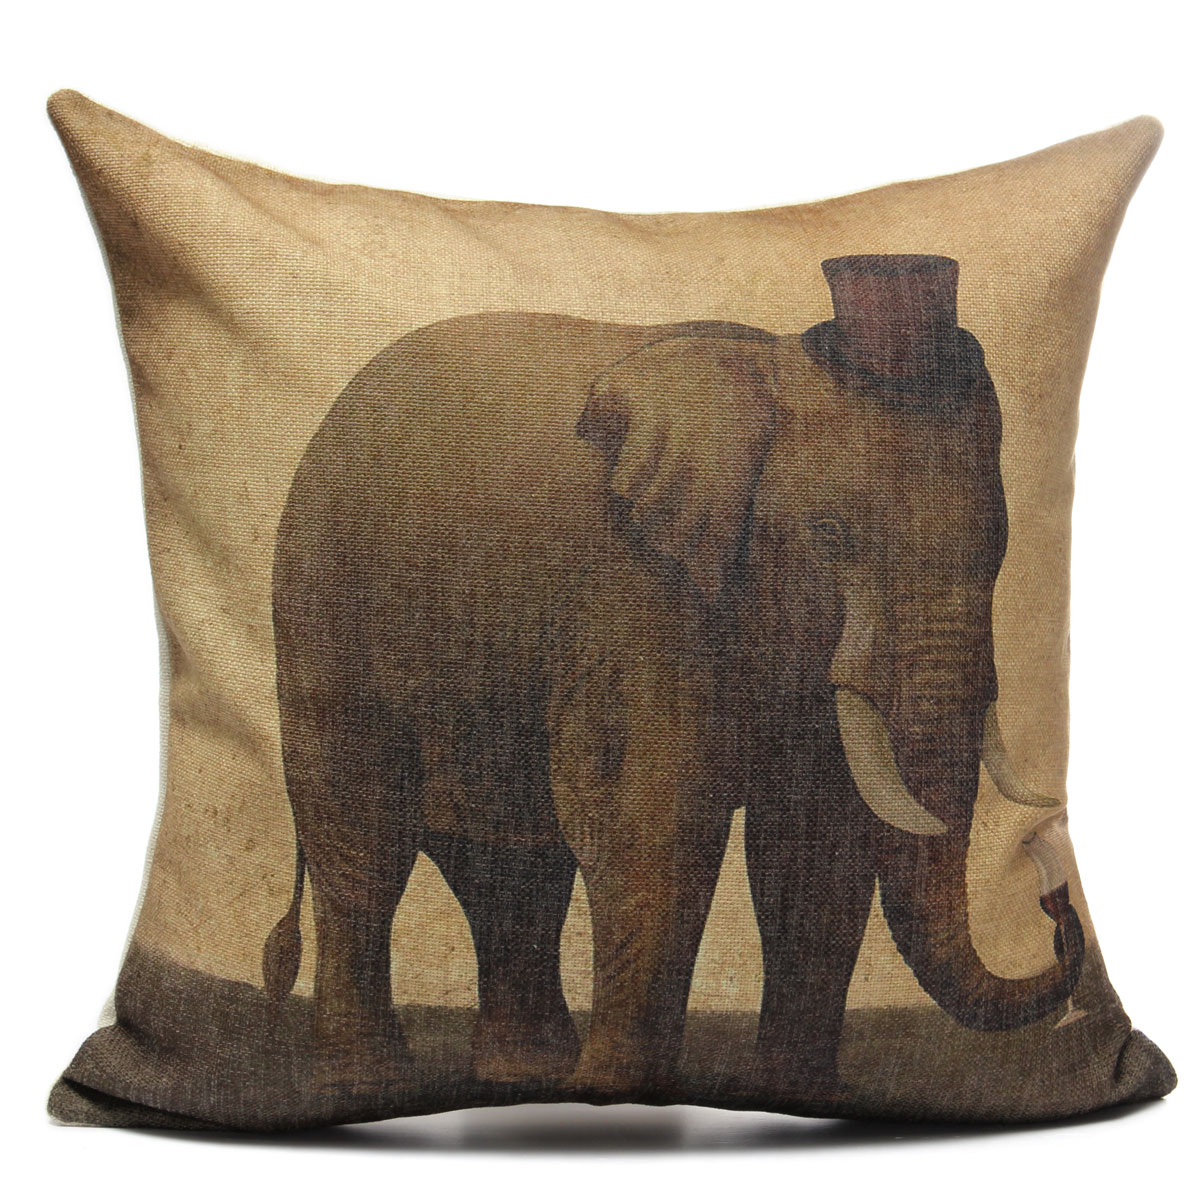 Animal Pillows : Animal World Home Decor Linen Pillow Case Bed Sofa Car Back Throw Cushion Cover eBay